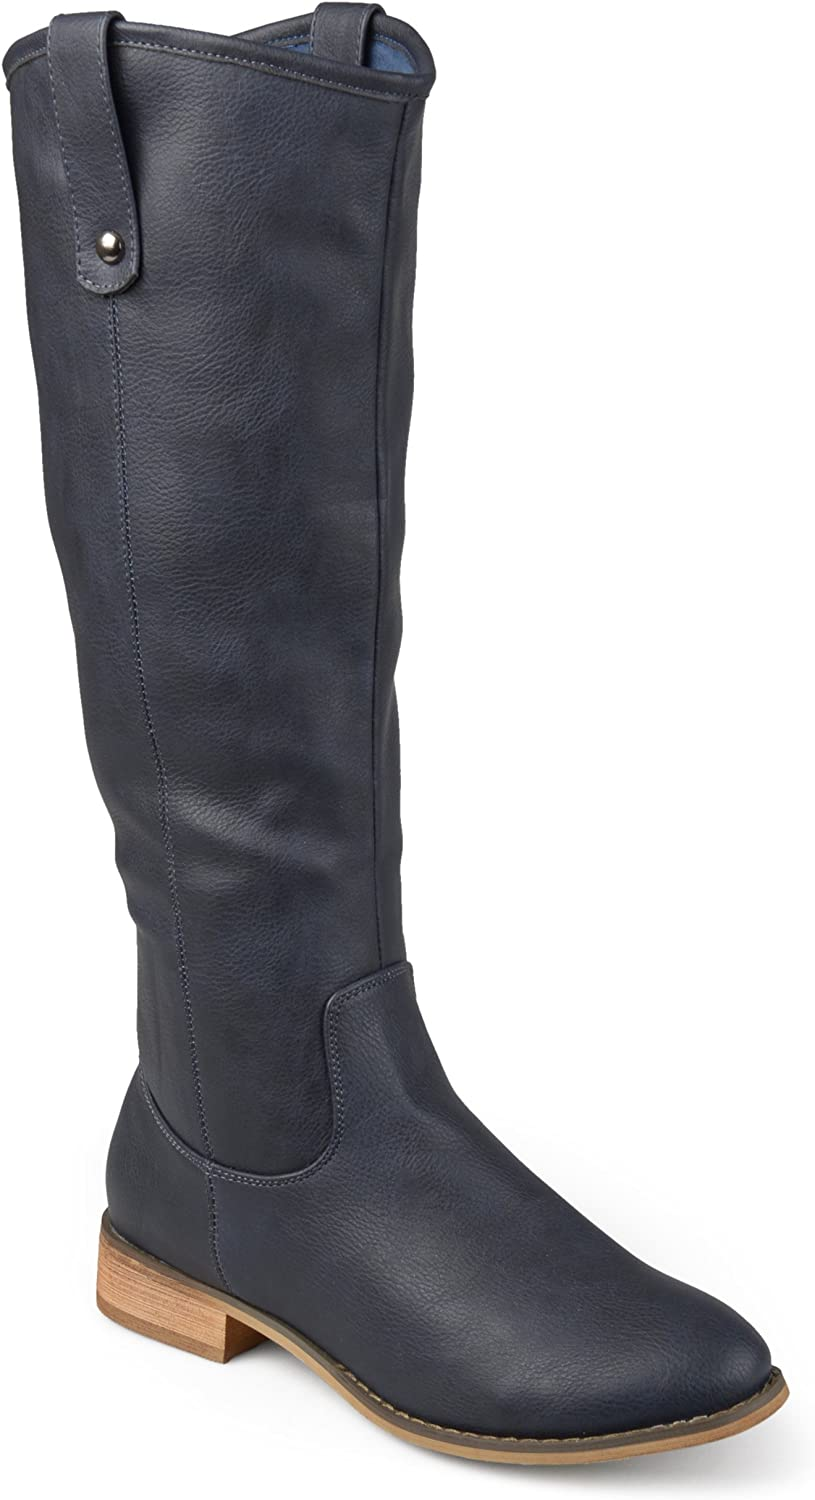 Journee Collection Womens Regular, Wide and Extra Wide Calf Round Toe Mid-Calf Boots Blue